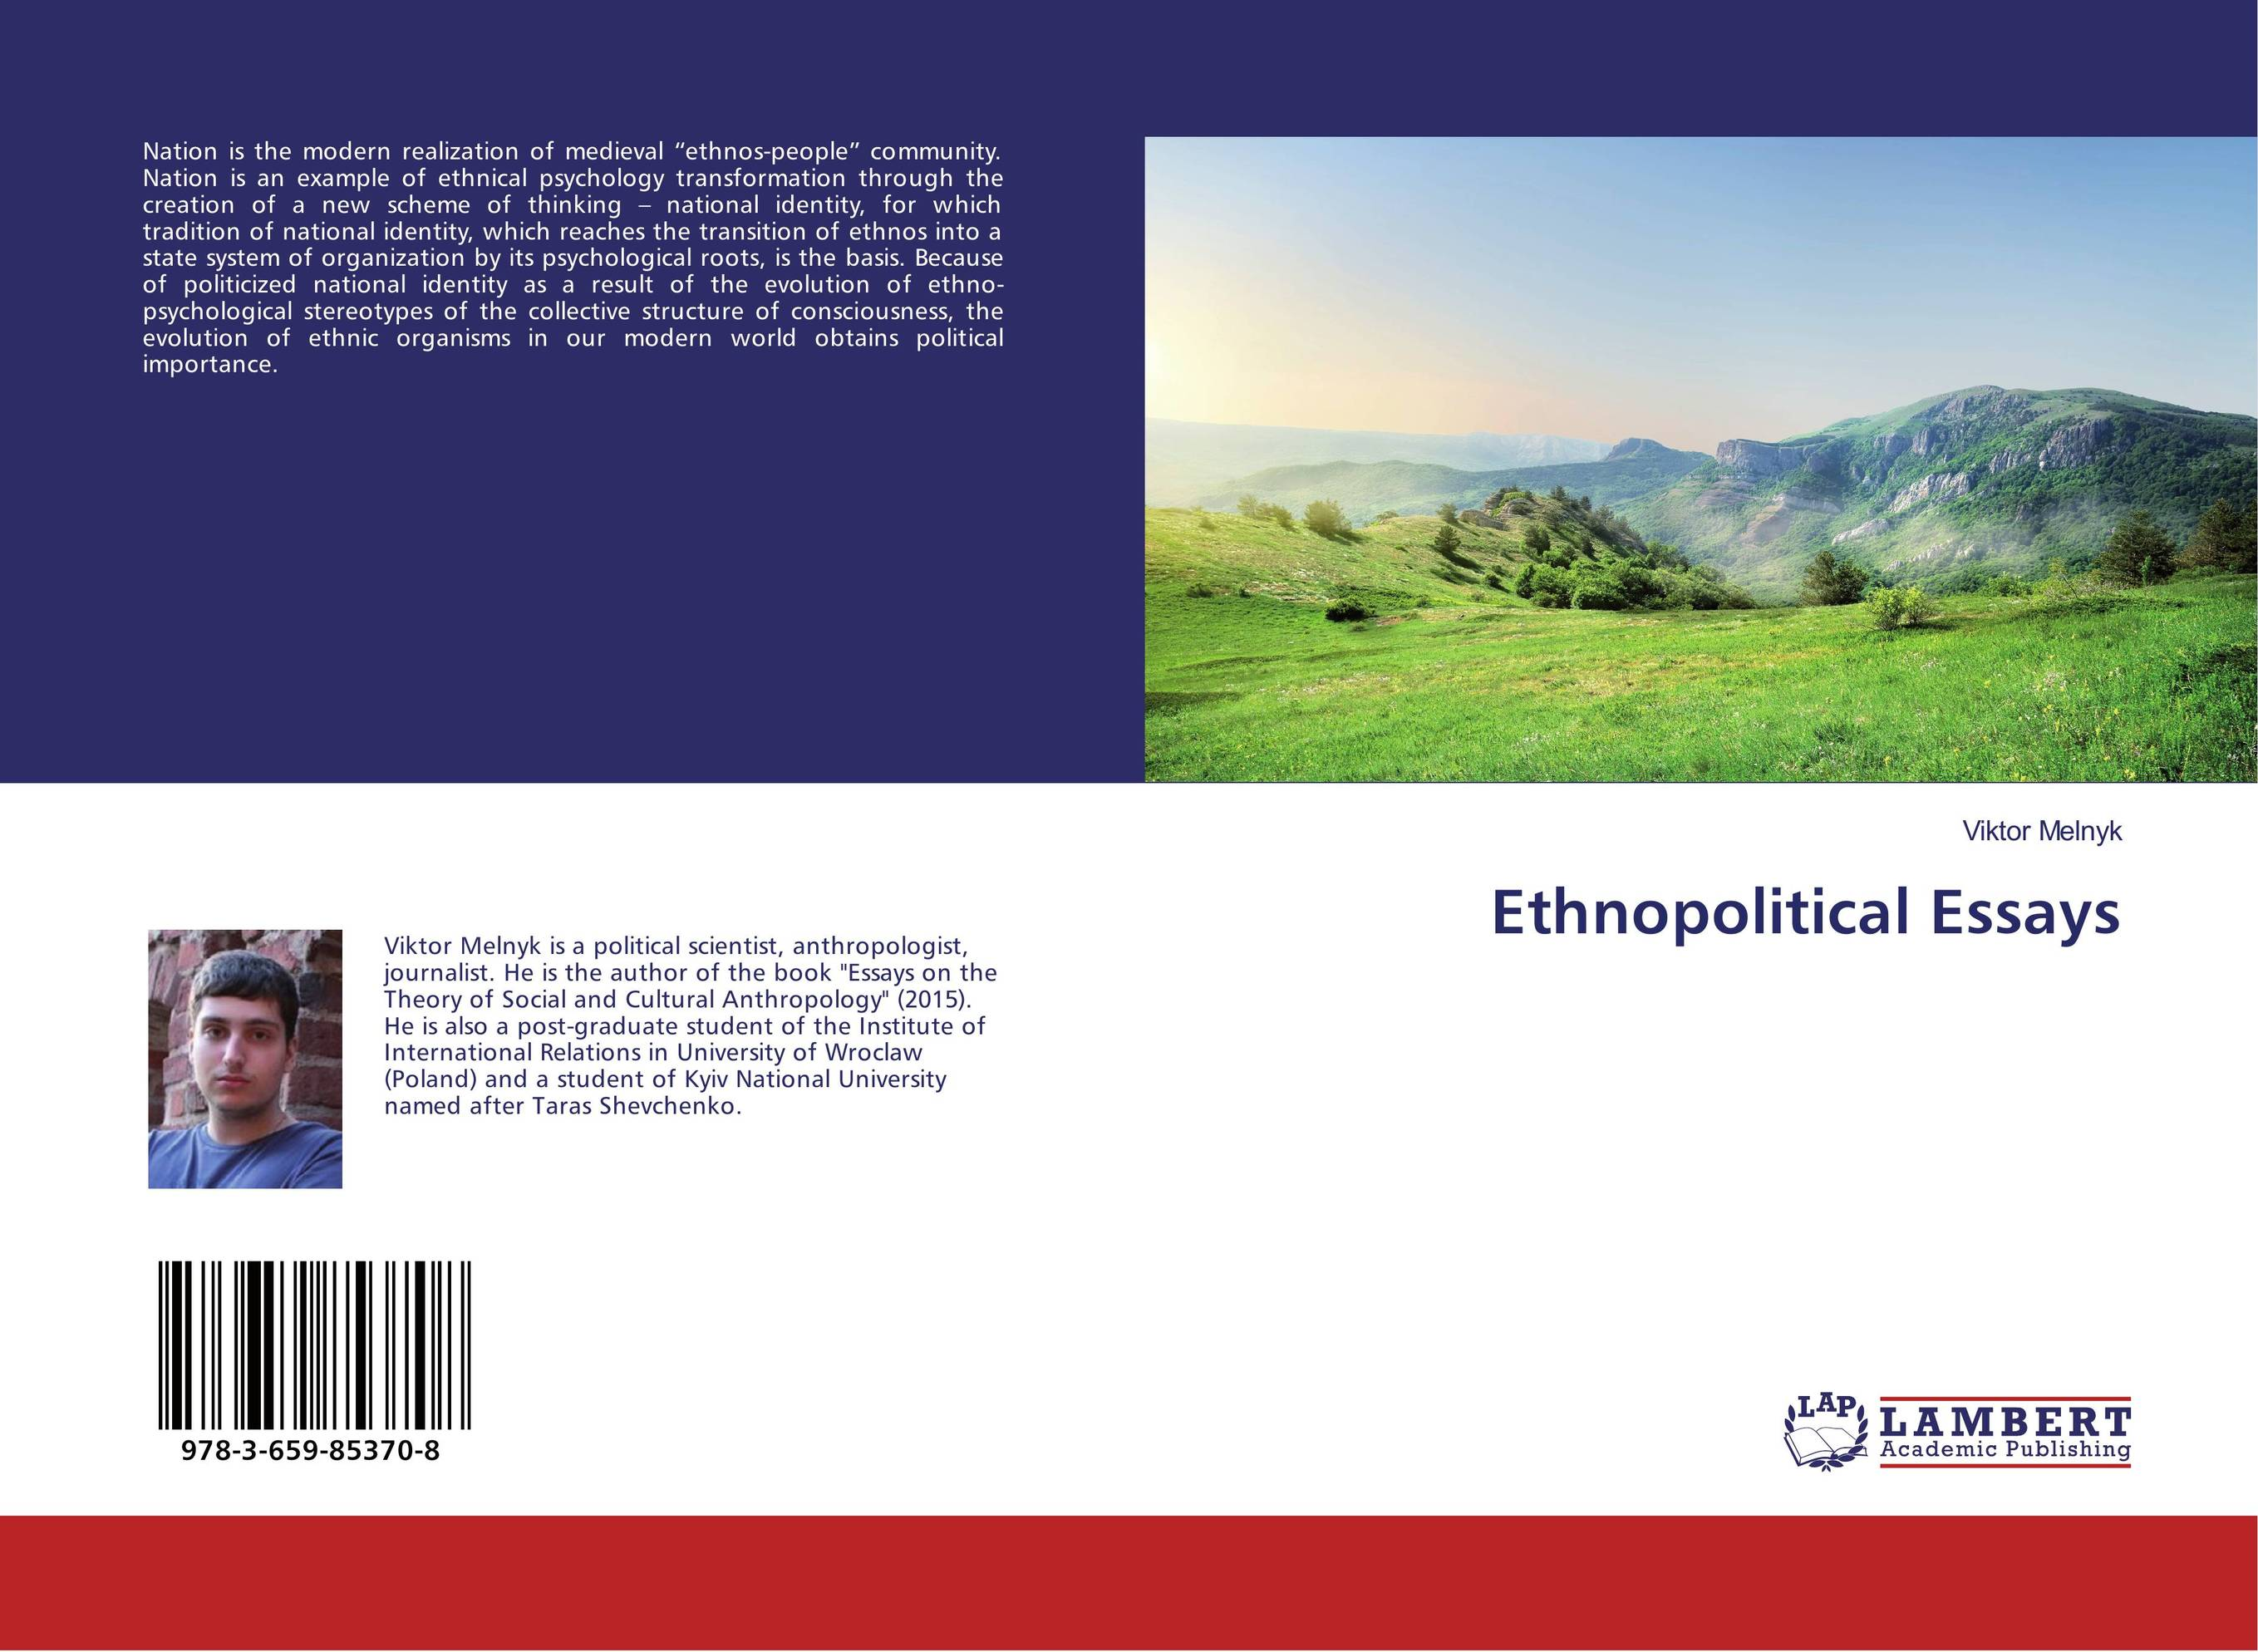 Ethnopolitical Essays